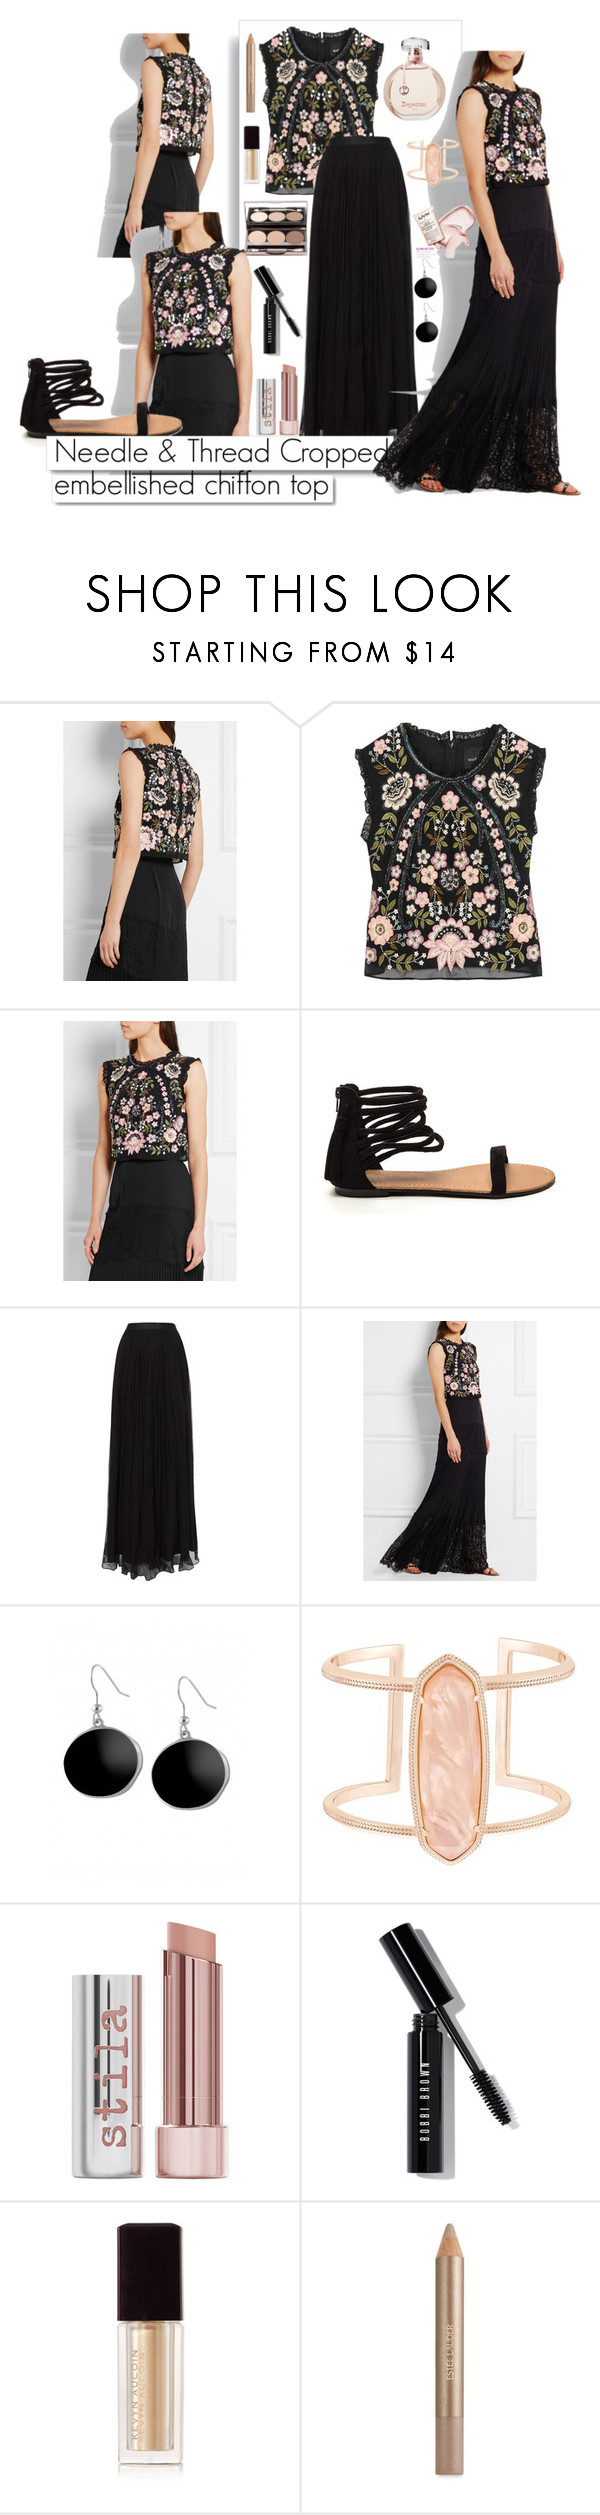 """""""Needle & Thread Cropped embellished chiffon top"""" by maggiesmelody ❤ liked on Polyvore featuring Needle & Thread, Nude by Nature, White Label, Karen Kane, Kendra Scott, Stila, Bobbi Brown Cosmetics, Kevyn Aucoin, Estée Lauder and summersandals"""